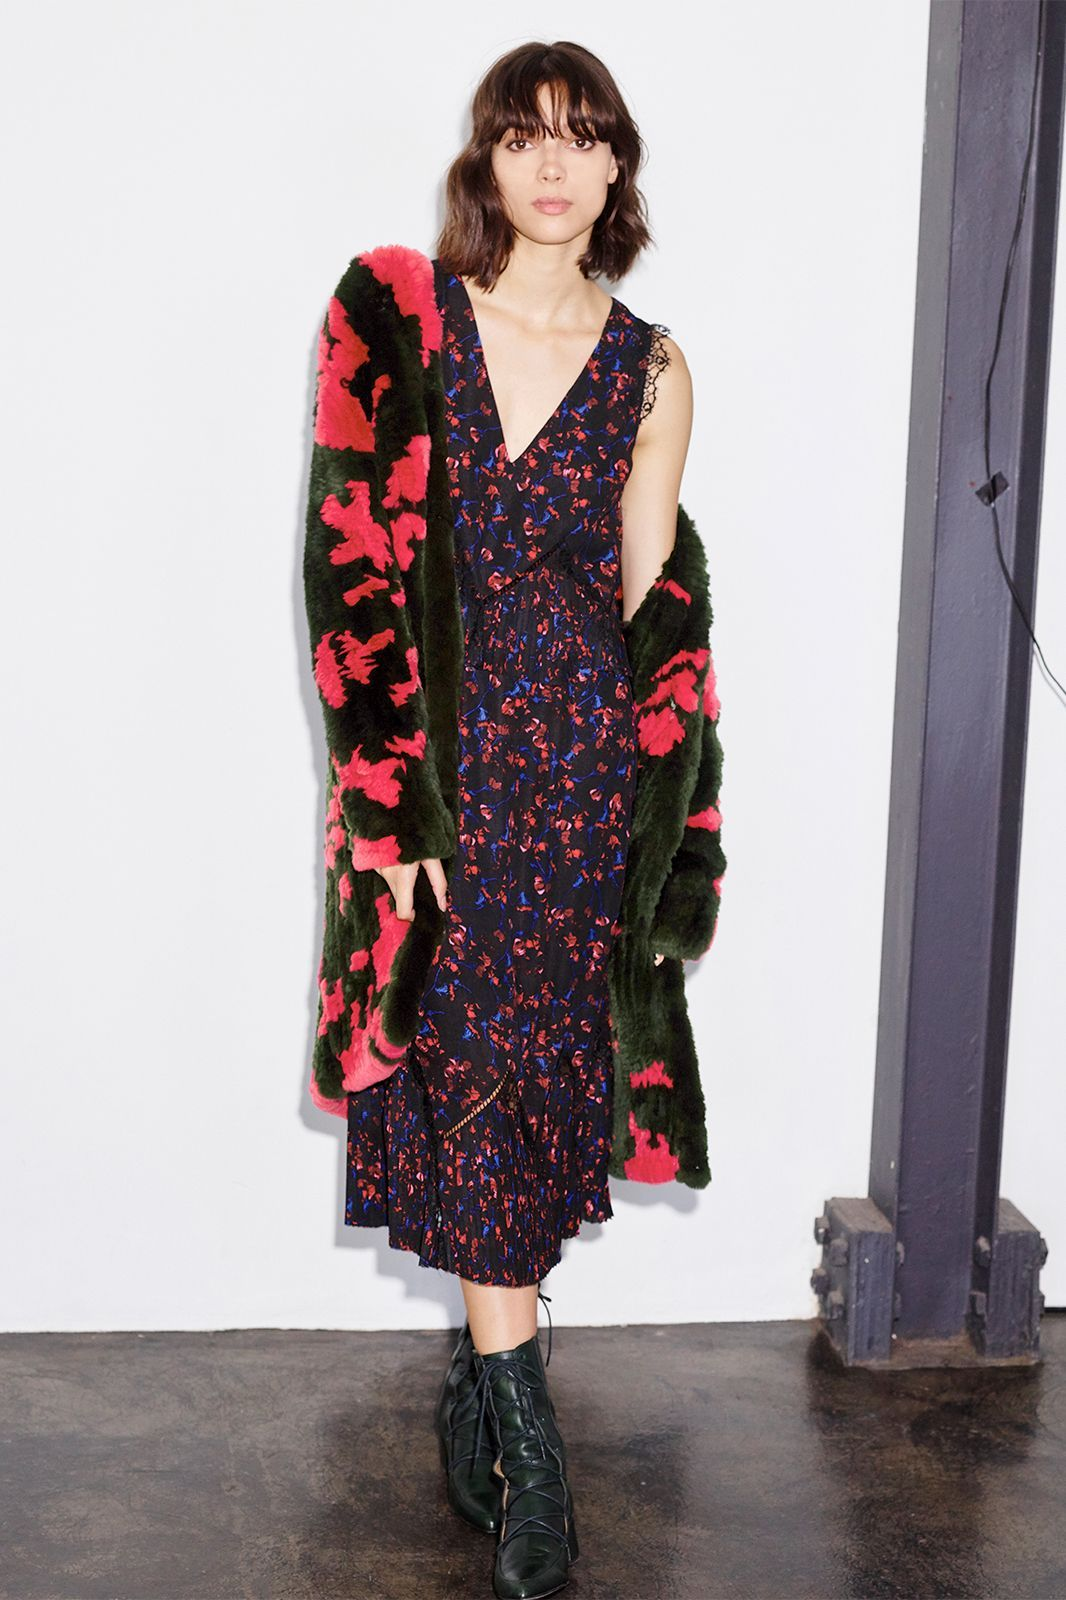 24 Outfits That'll Last Beyond The Holidays  #refinery29  http://www.refinery29.com/thakoon-new-holiday-collection-photos#slide-10  Now, this is a coat that makes us want to face the cold....